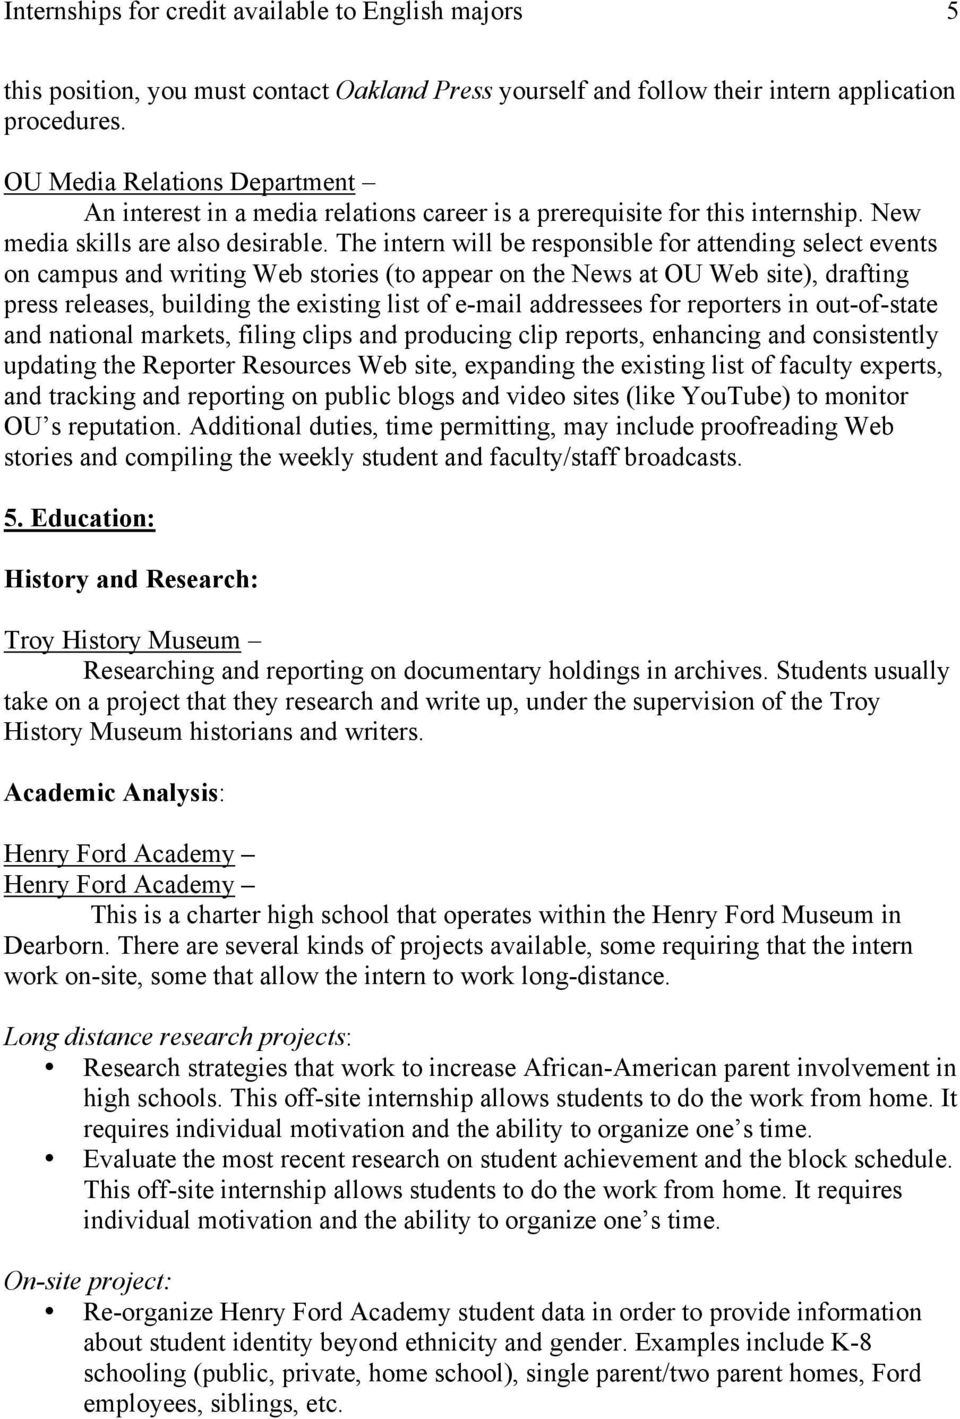 Internships for credit available to English majors 2 - PDF